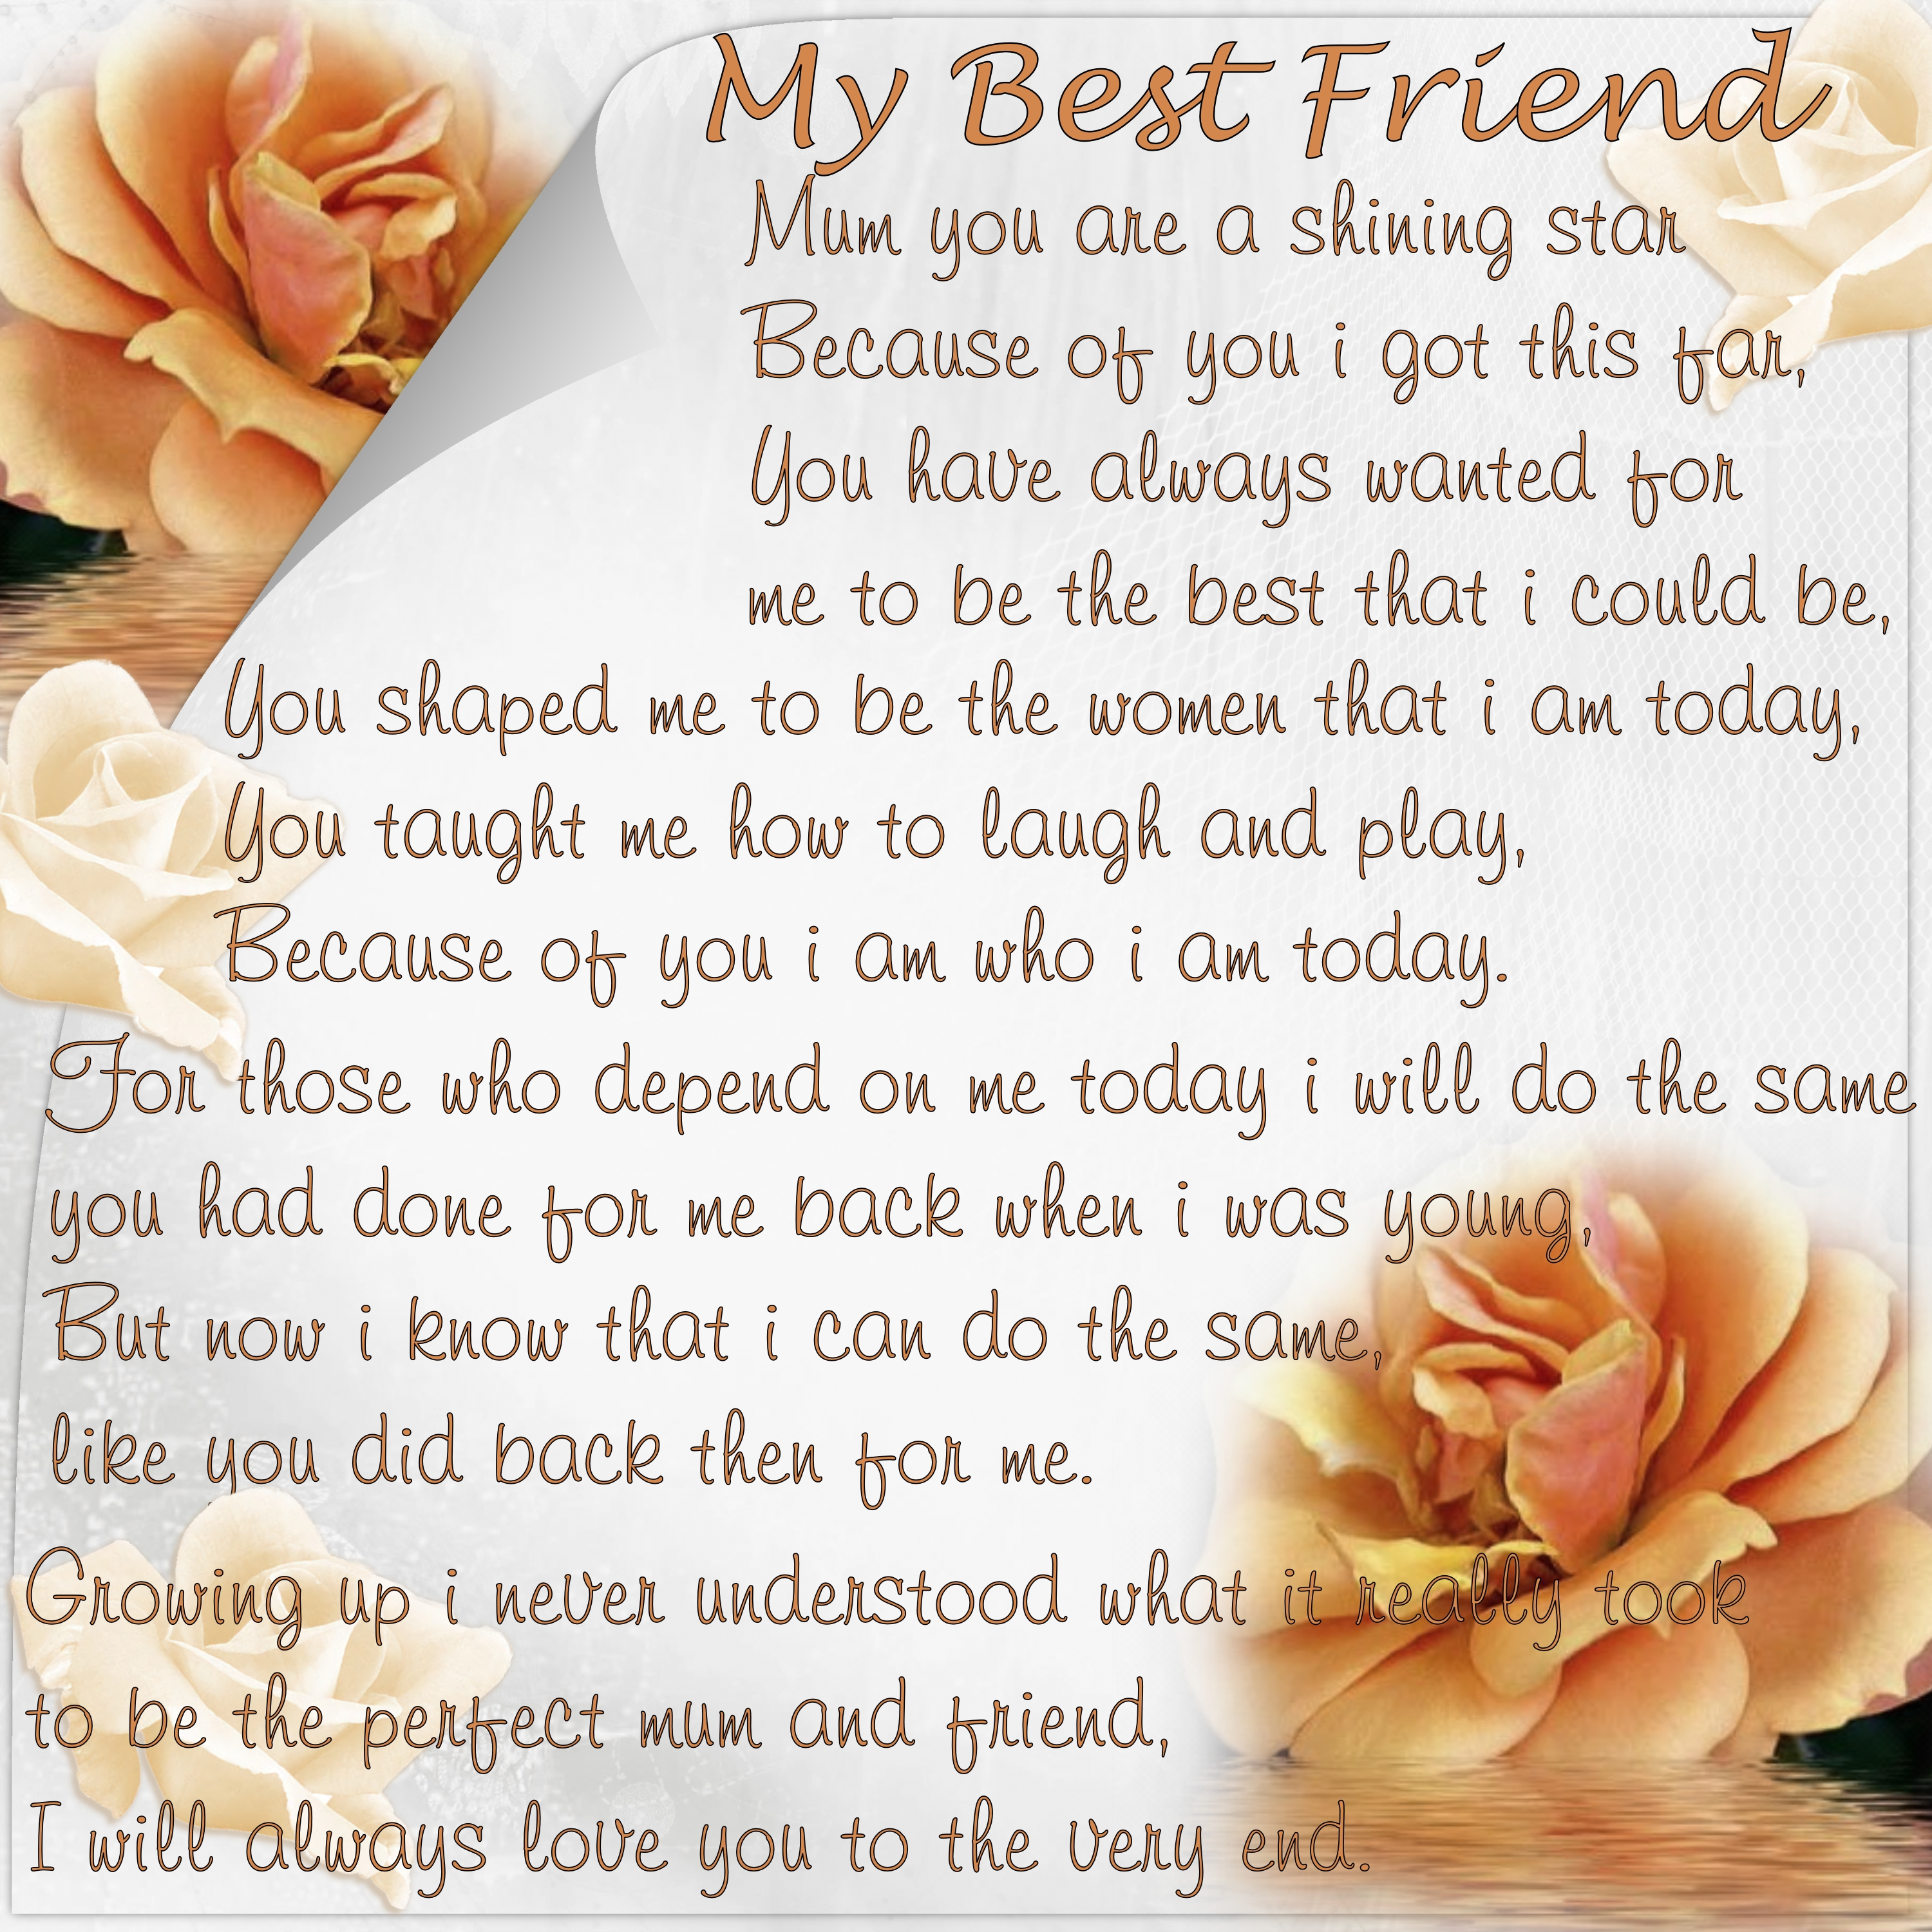 poem for a good friend on her birthday ; a-poem-to-my-best-friend-on-her-birthday-475869-26513b42-020e-4754-aa0d-d35b123186ca-o